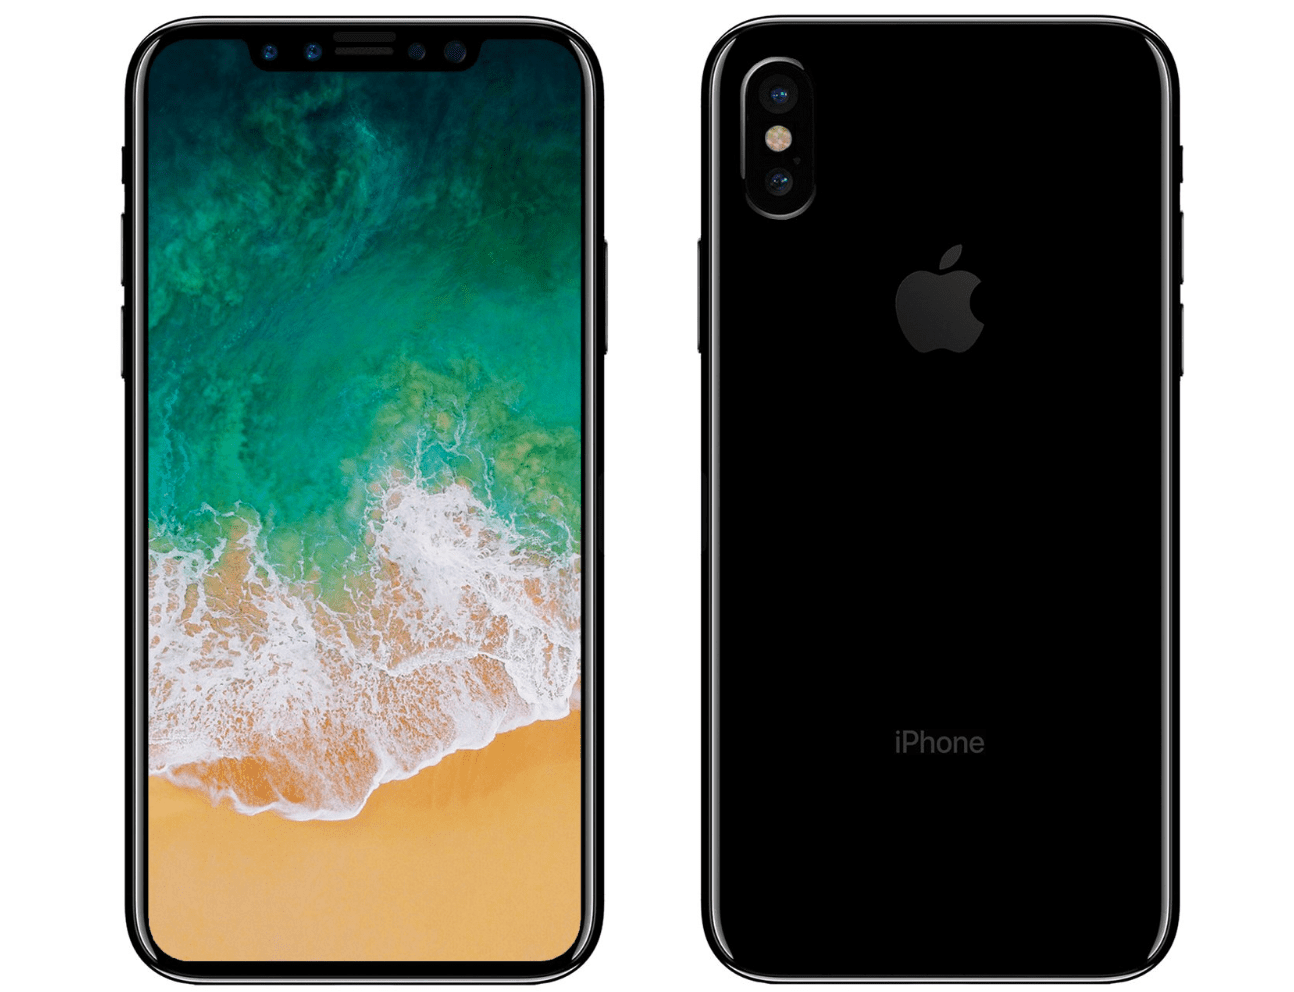 Exclusive: Apple is Working on Three Redesigned iPhones ...